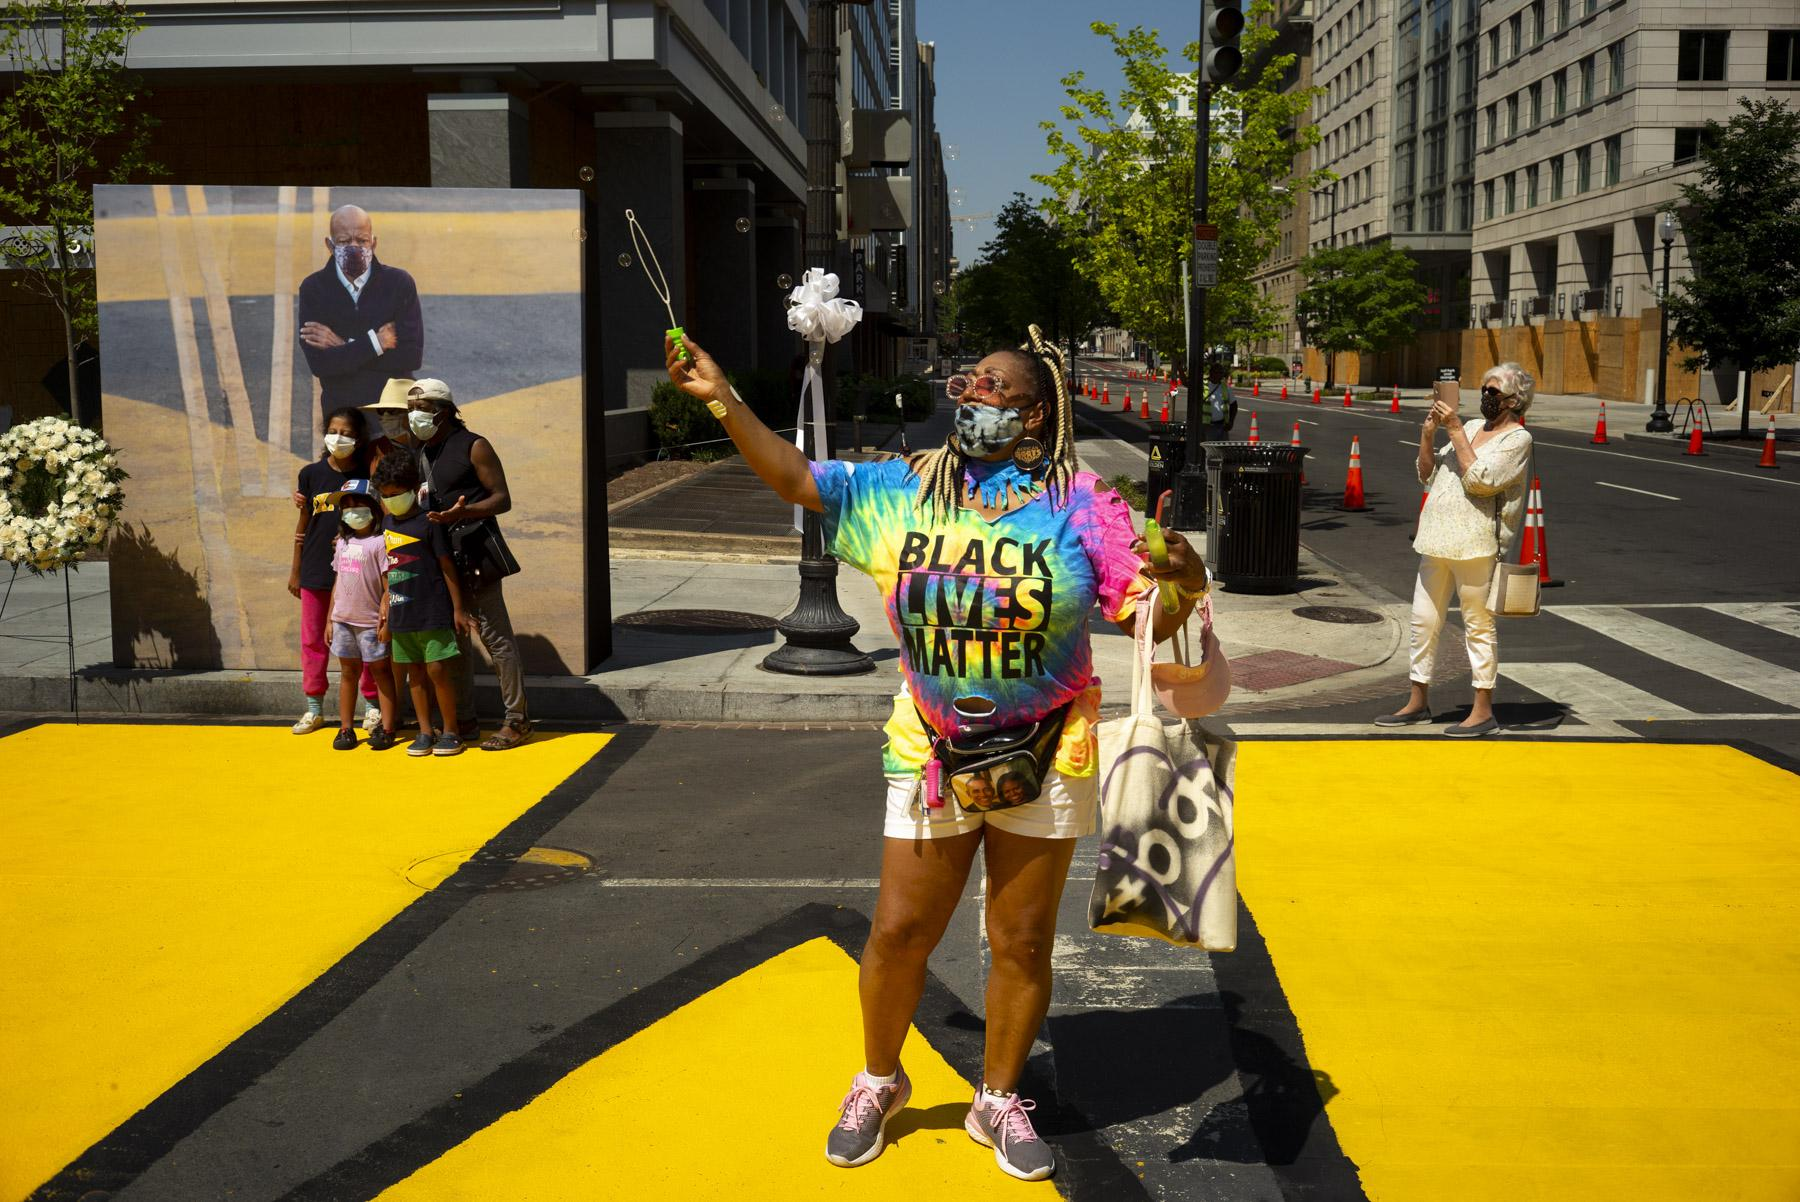 Janet Purnell came down from Philadelphia to be part of the funeral celebration of John Lewis at Black Lives Matter Plaza in Washington D.C.